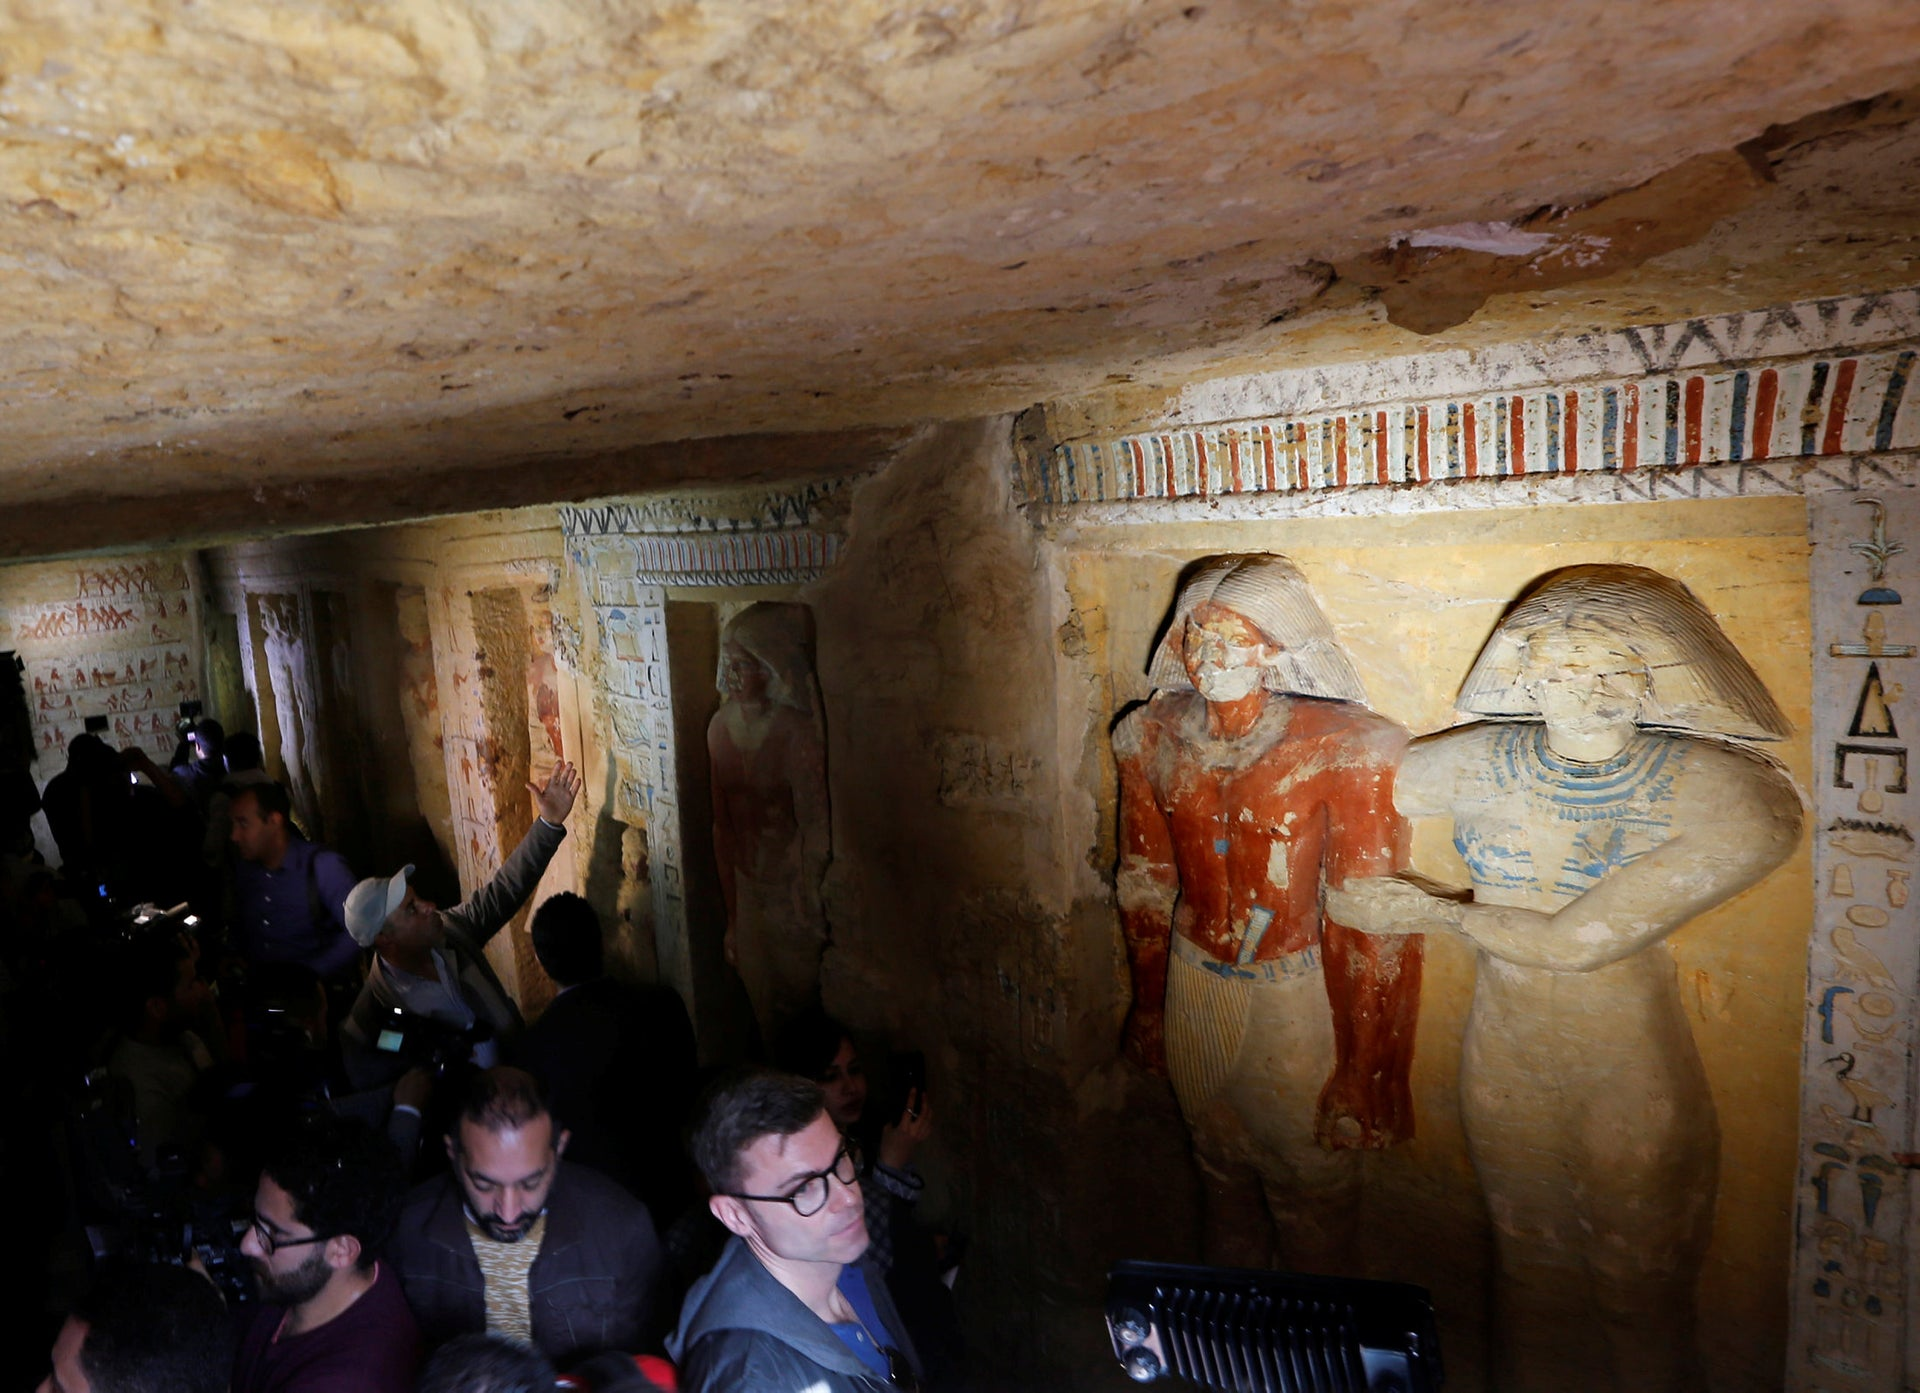 """Uncovered tomb of royal priest during the reign of King Nefer Ir-Ka-Re, named """"Wahtye"""", at the site of the step pyramid of Saqqara, in Giza, Egypt, December 15, 2018."""